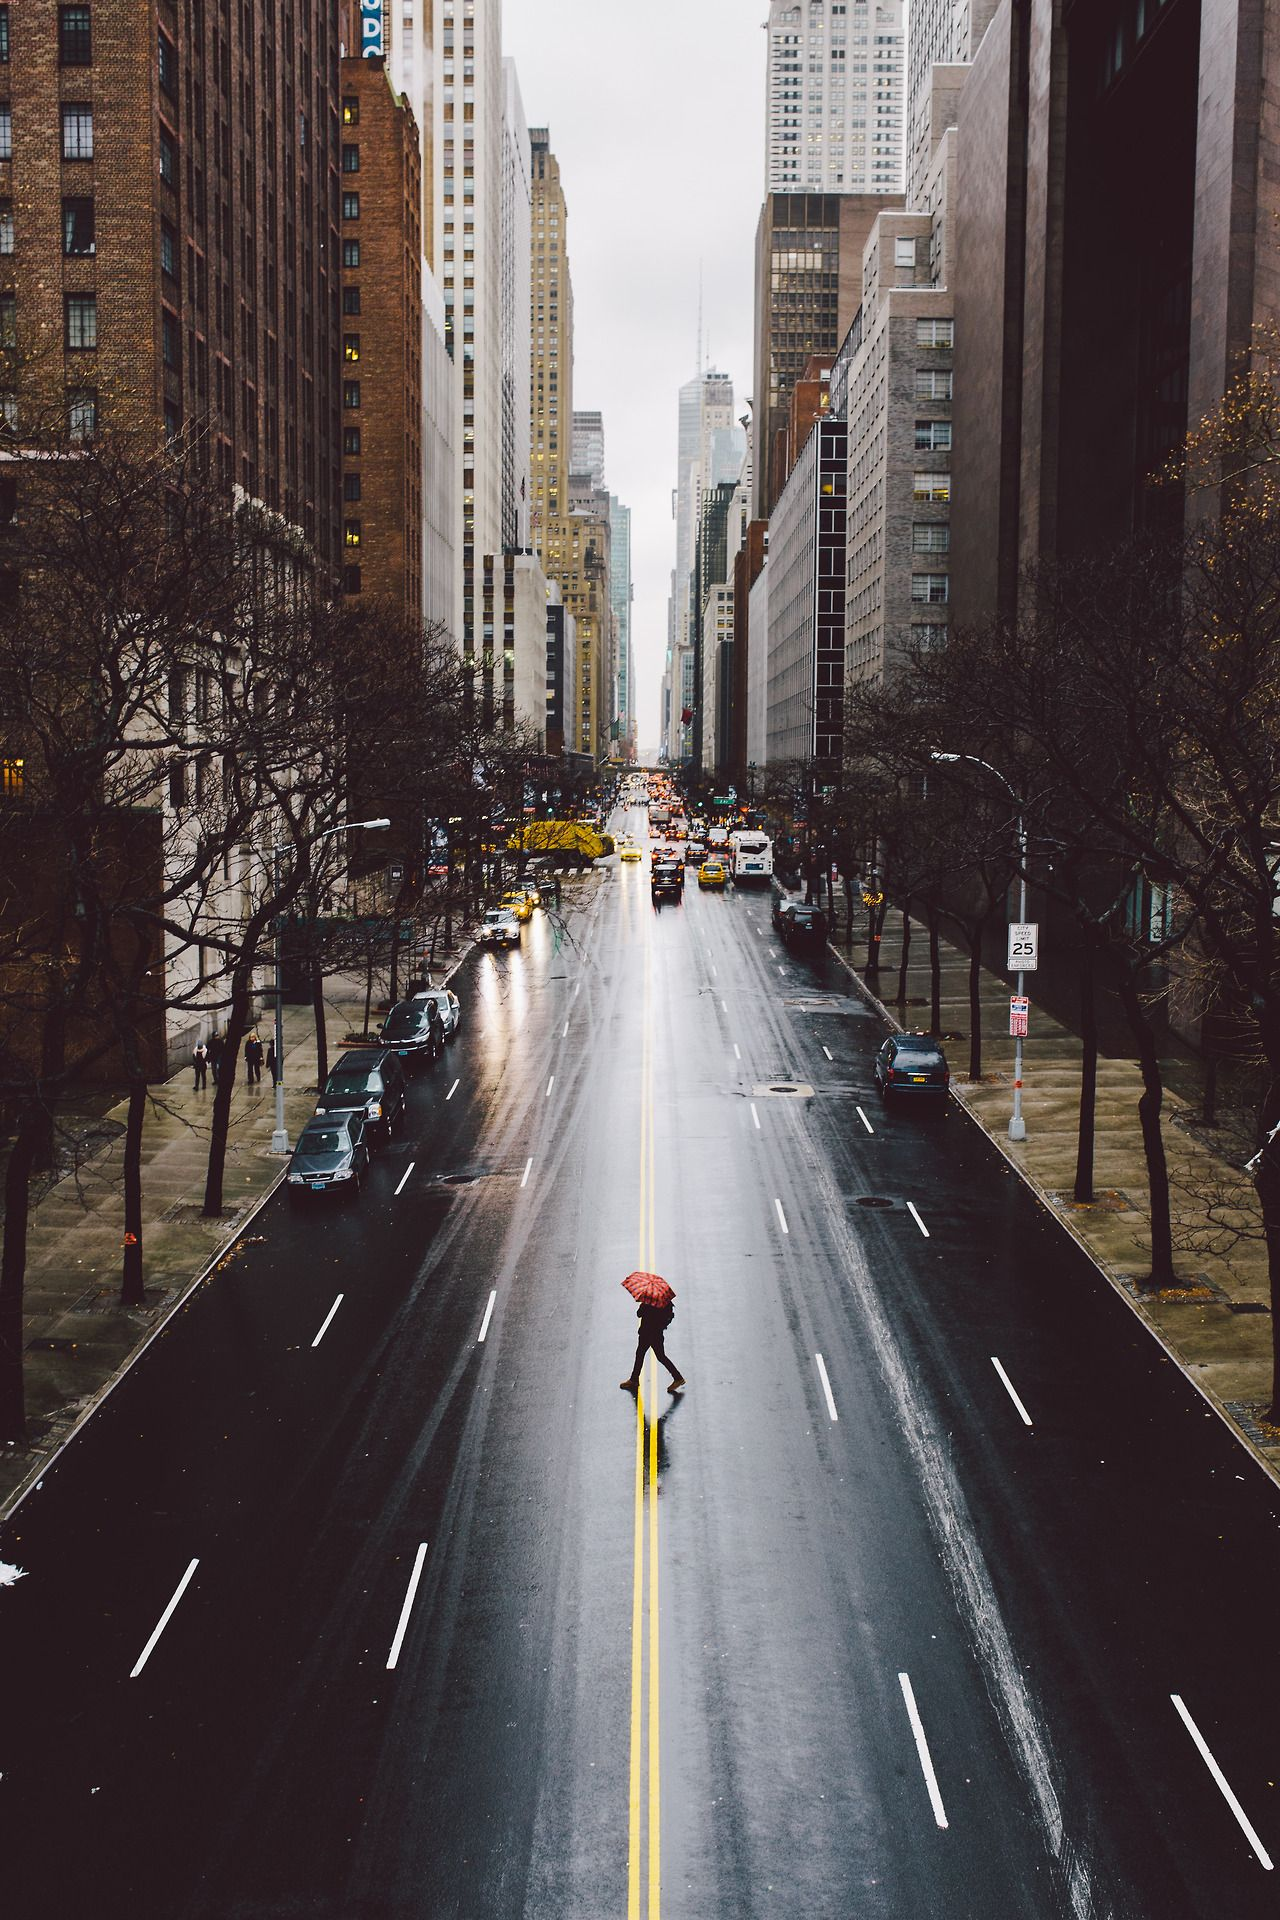 Pin By Tish On Street Photography City Instagram New York Scenery